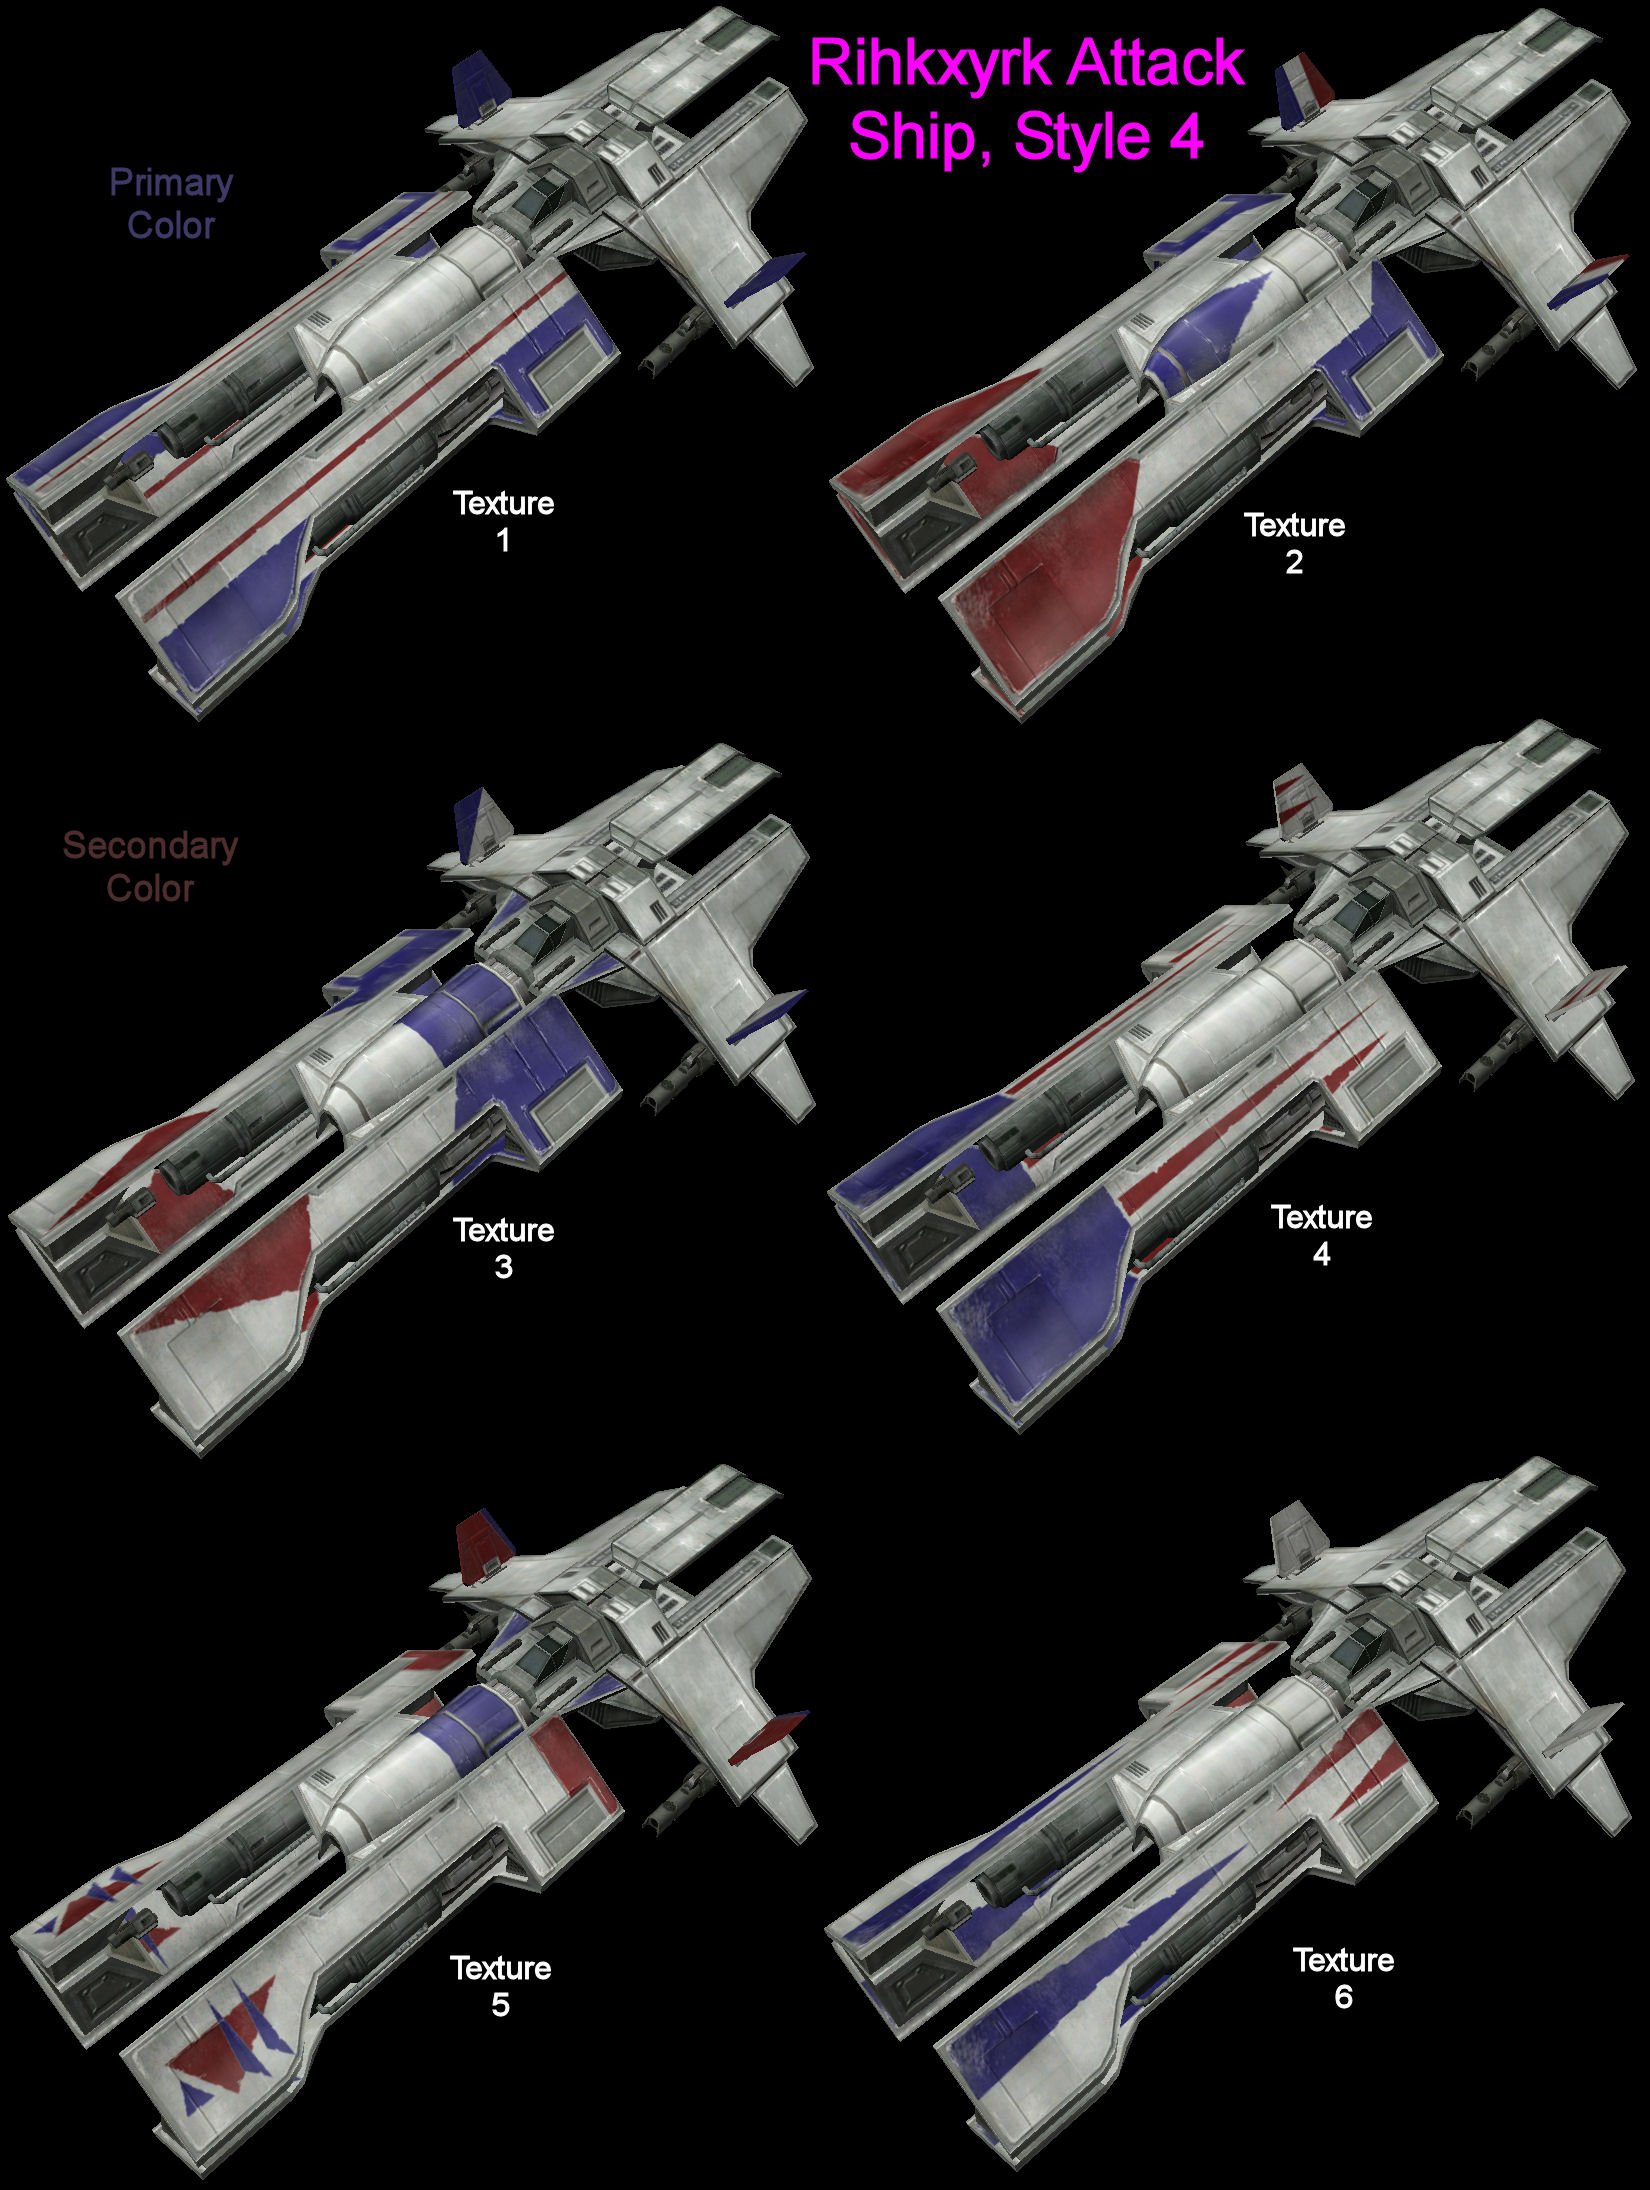 Rihkxyrk Attack Ship Chassis Blueprints Style 4 Swg Wiki Fandom